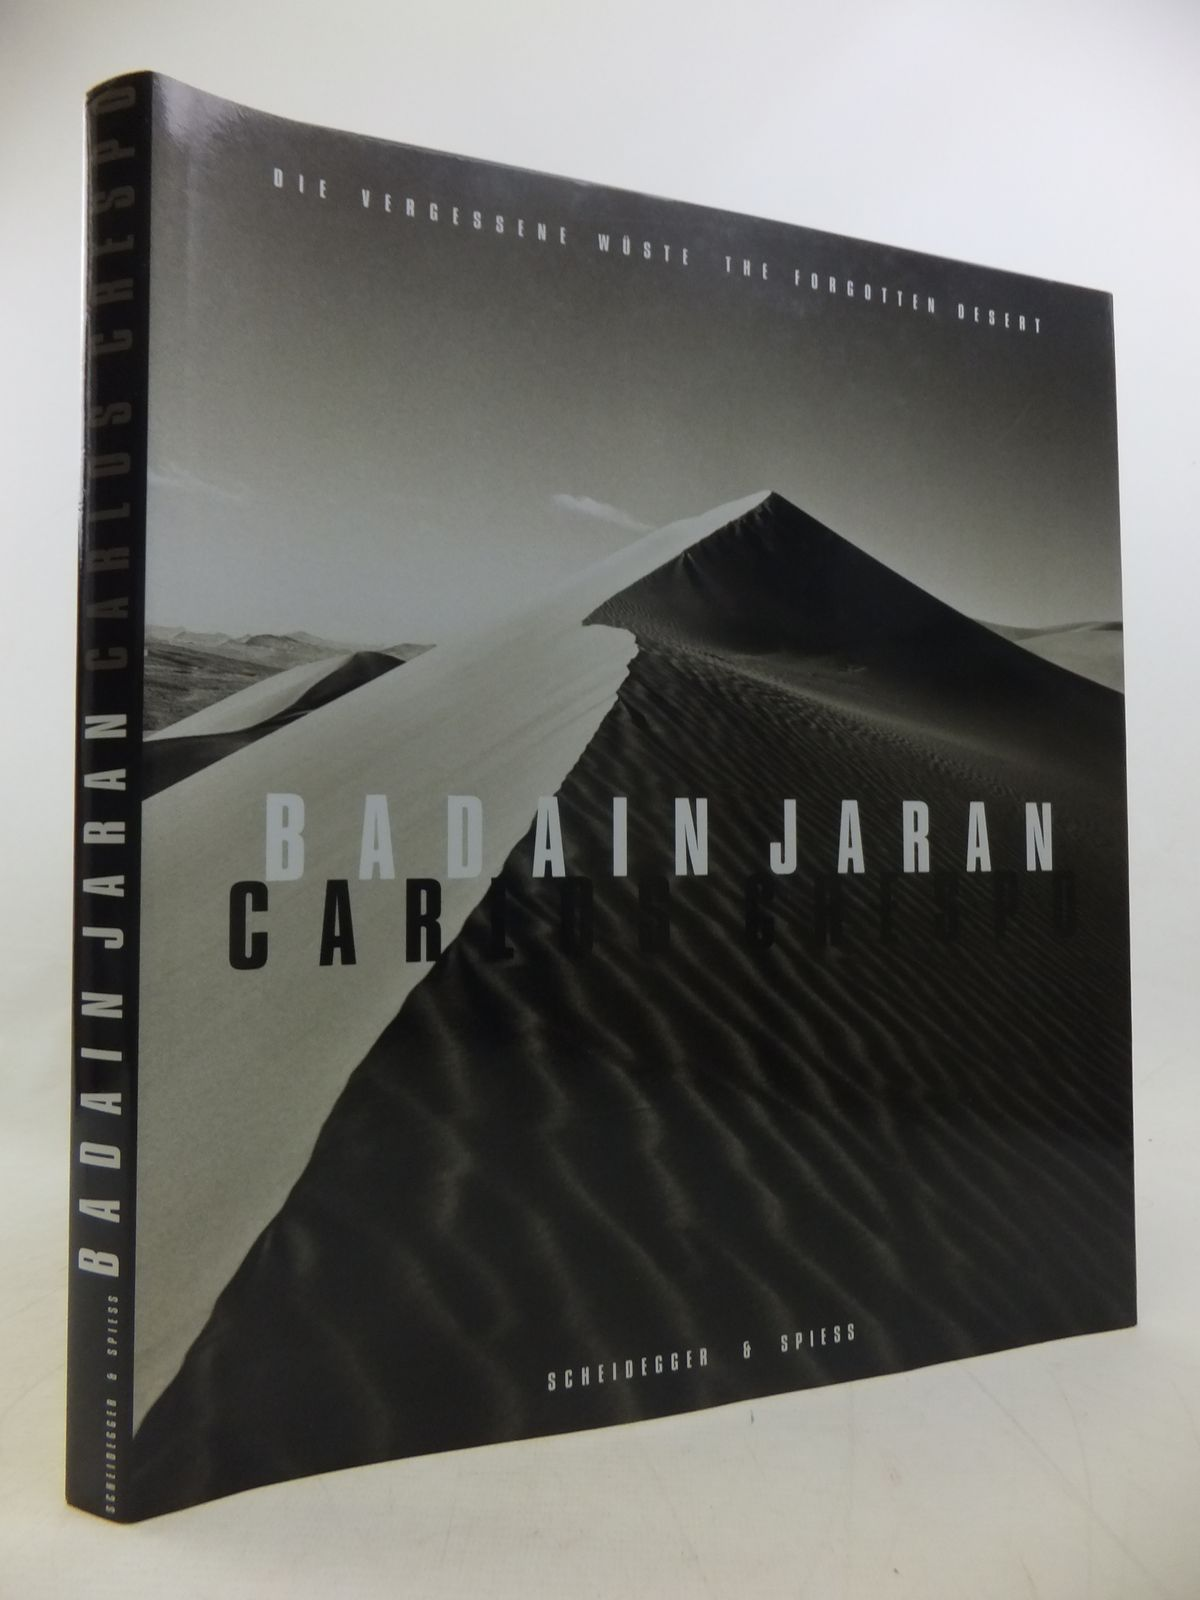 Photo of BADAIN JARAN: THE FORGOTTEN DESERT: DIE VERGESSENE WUSTE written by Hug, Catherine Kouwenhoven, Bill illustrated by Crespo, Luis Fresnocarlos published by Scheidegger & Spiess (STOCK CODE: 1811246)  for sale by Stella & Rose's Books